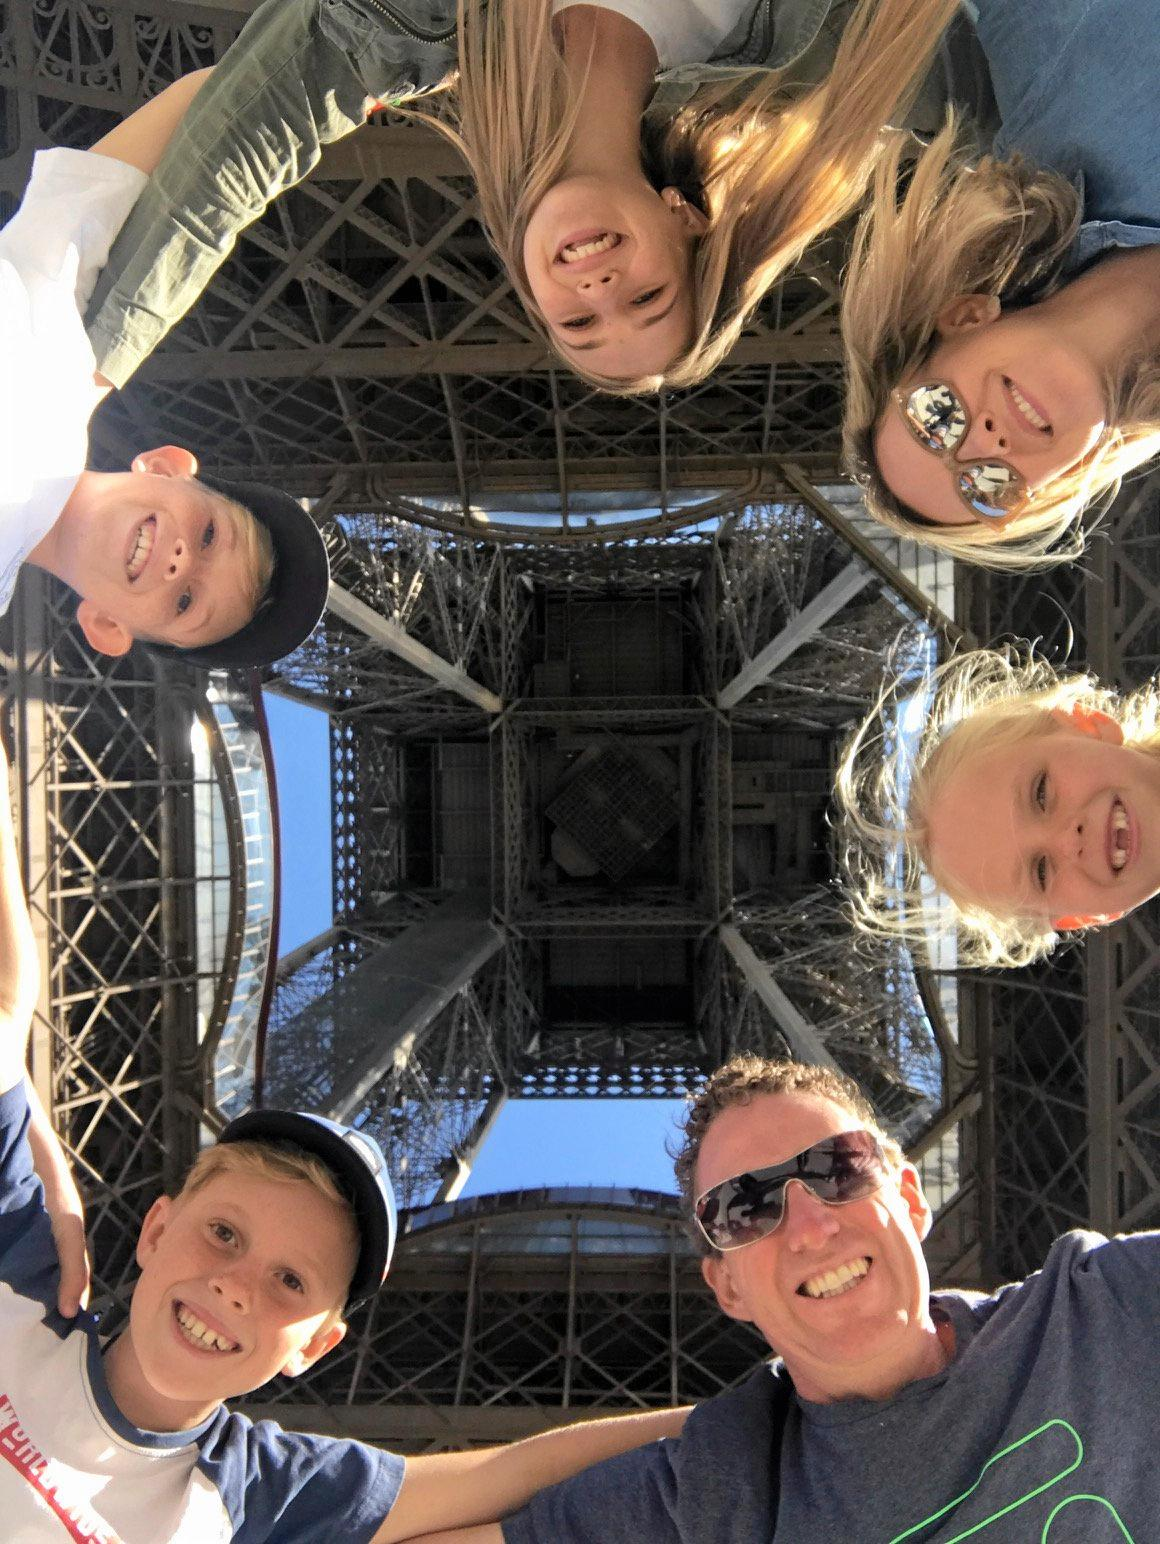 The Nicholl family stand under the Eiffel Tower in Paris, France.  From the top, clockwise is Kalia(16), Beth (Mum), Amaya (8), Nathan (Dad), Rase (10) and Tide (12).